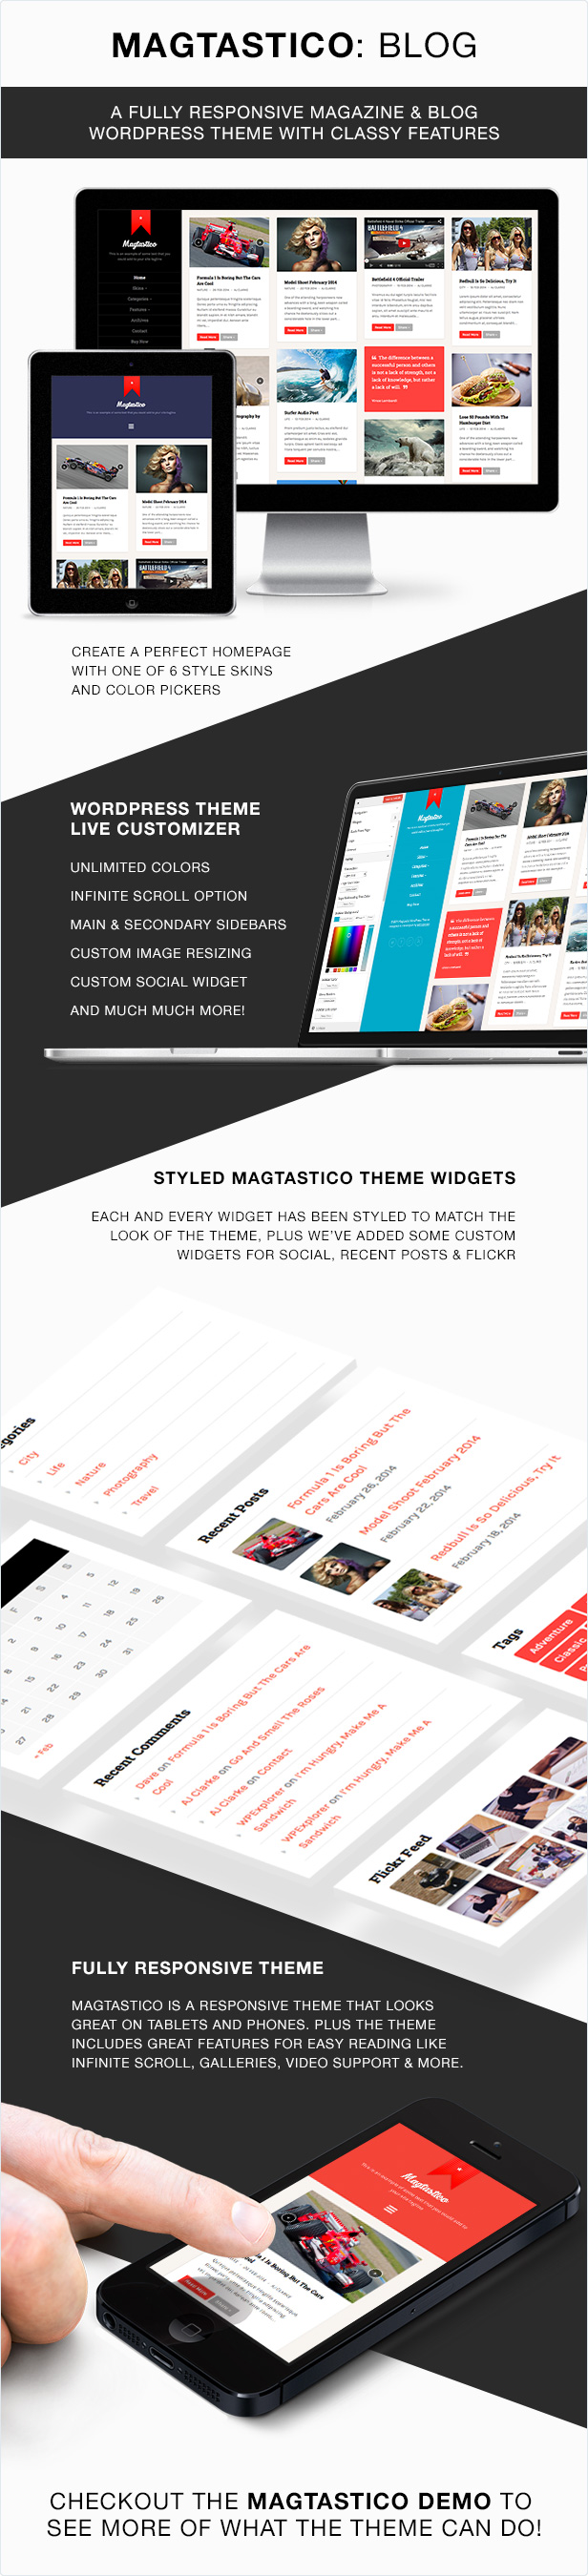 Magtastico WordPress Theme Features